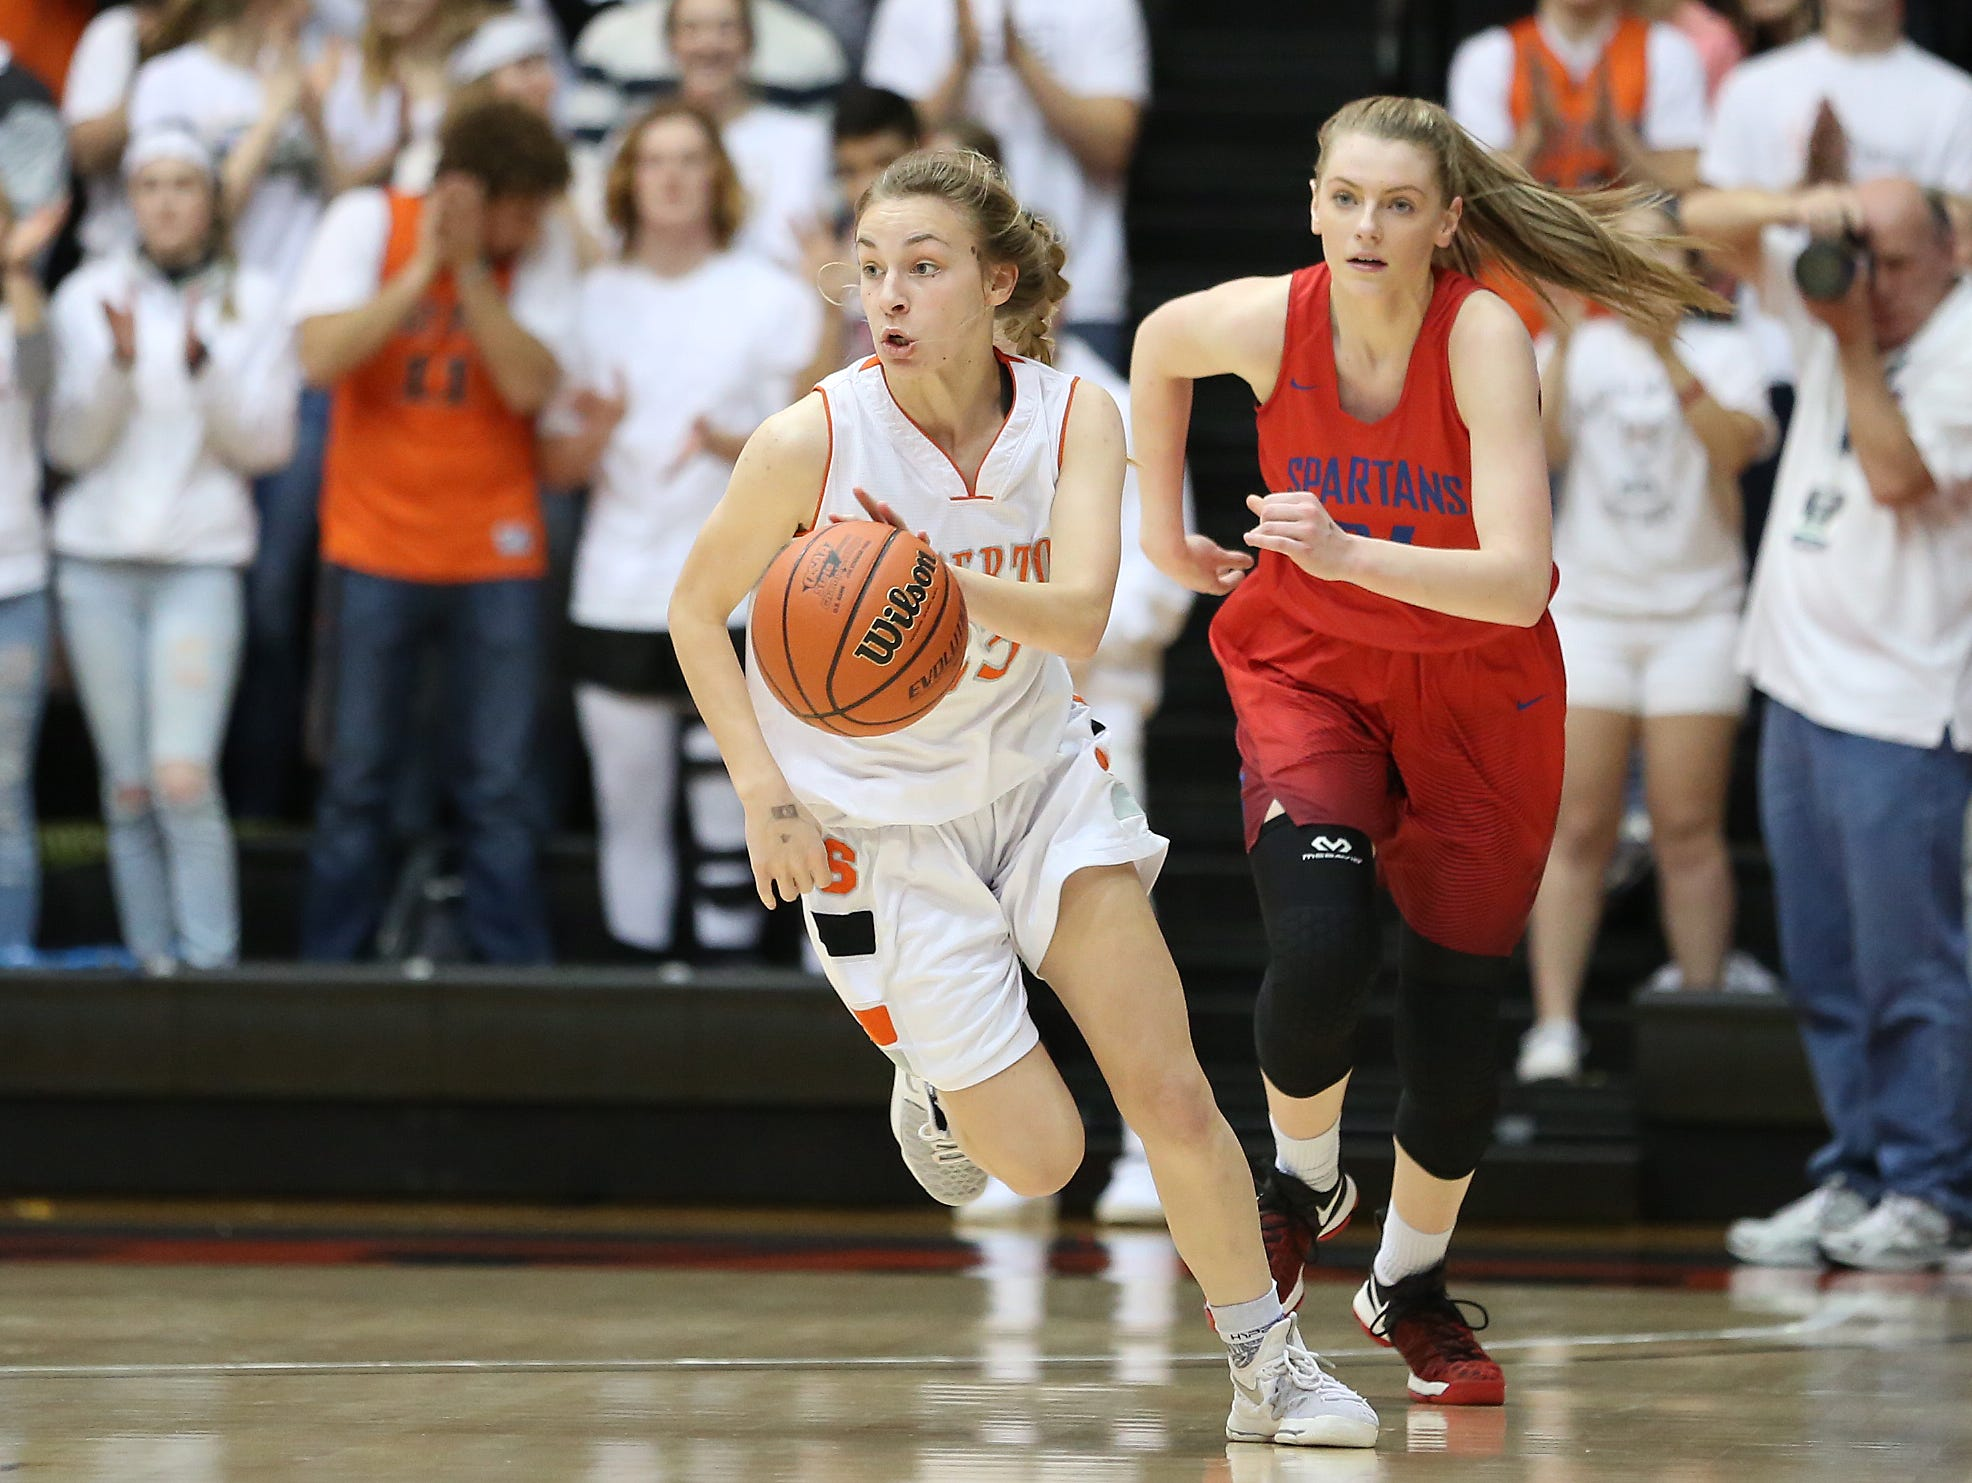 Silverton's Paige Alexander and the Foxes defeat Hillsboro 51-27 in the OSAA Class 5A state quarterfinals on Wednesday, March 8, 2017, at Gill Coliseum in Corvallis.